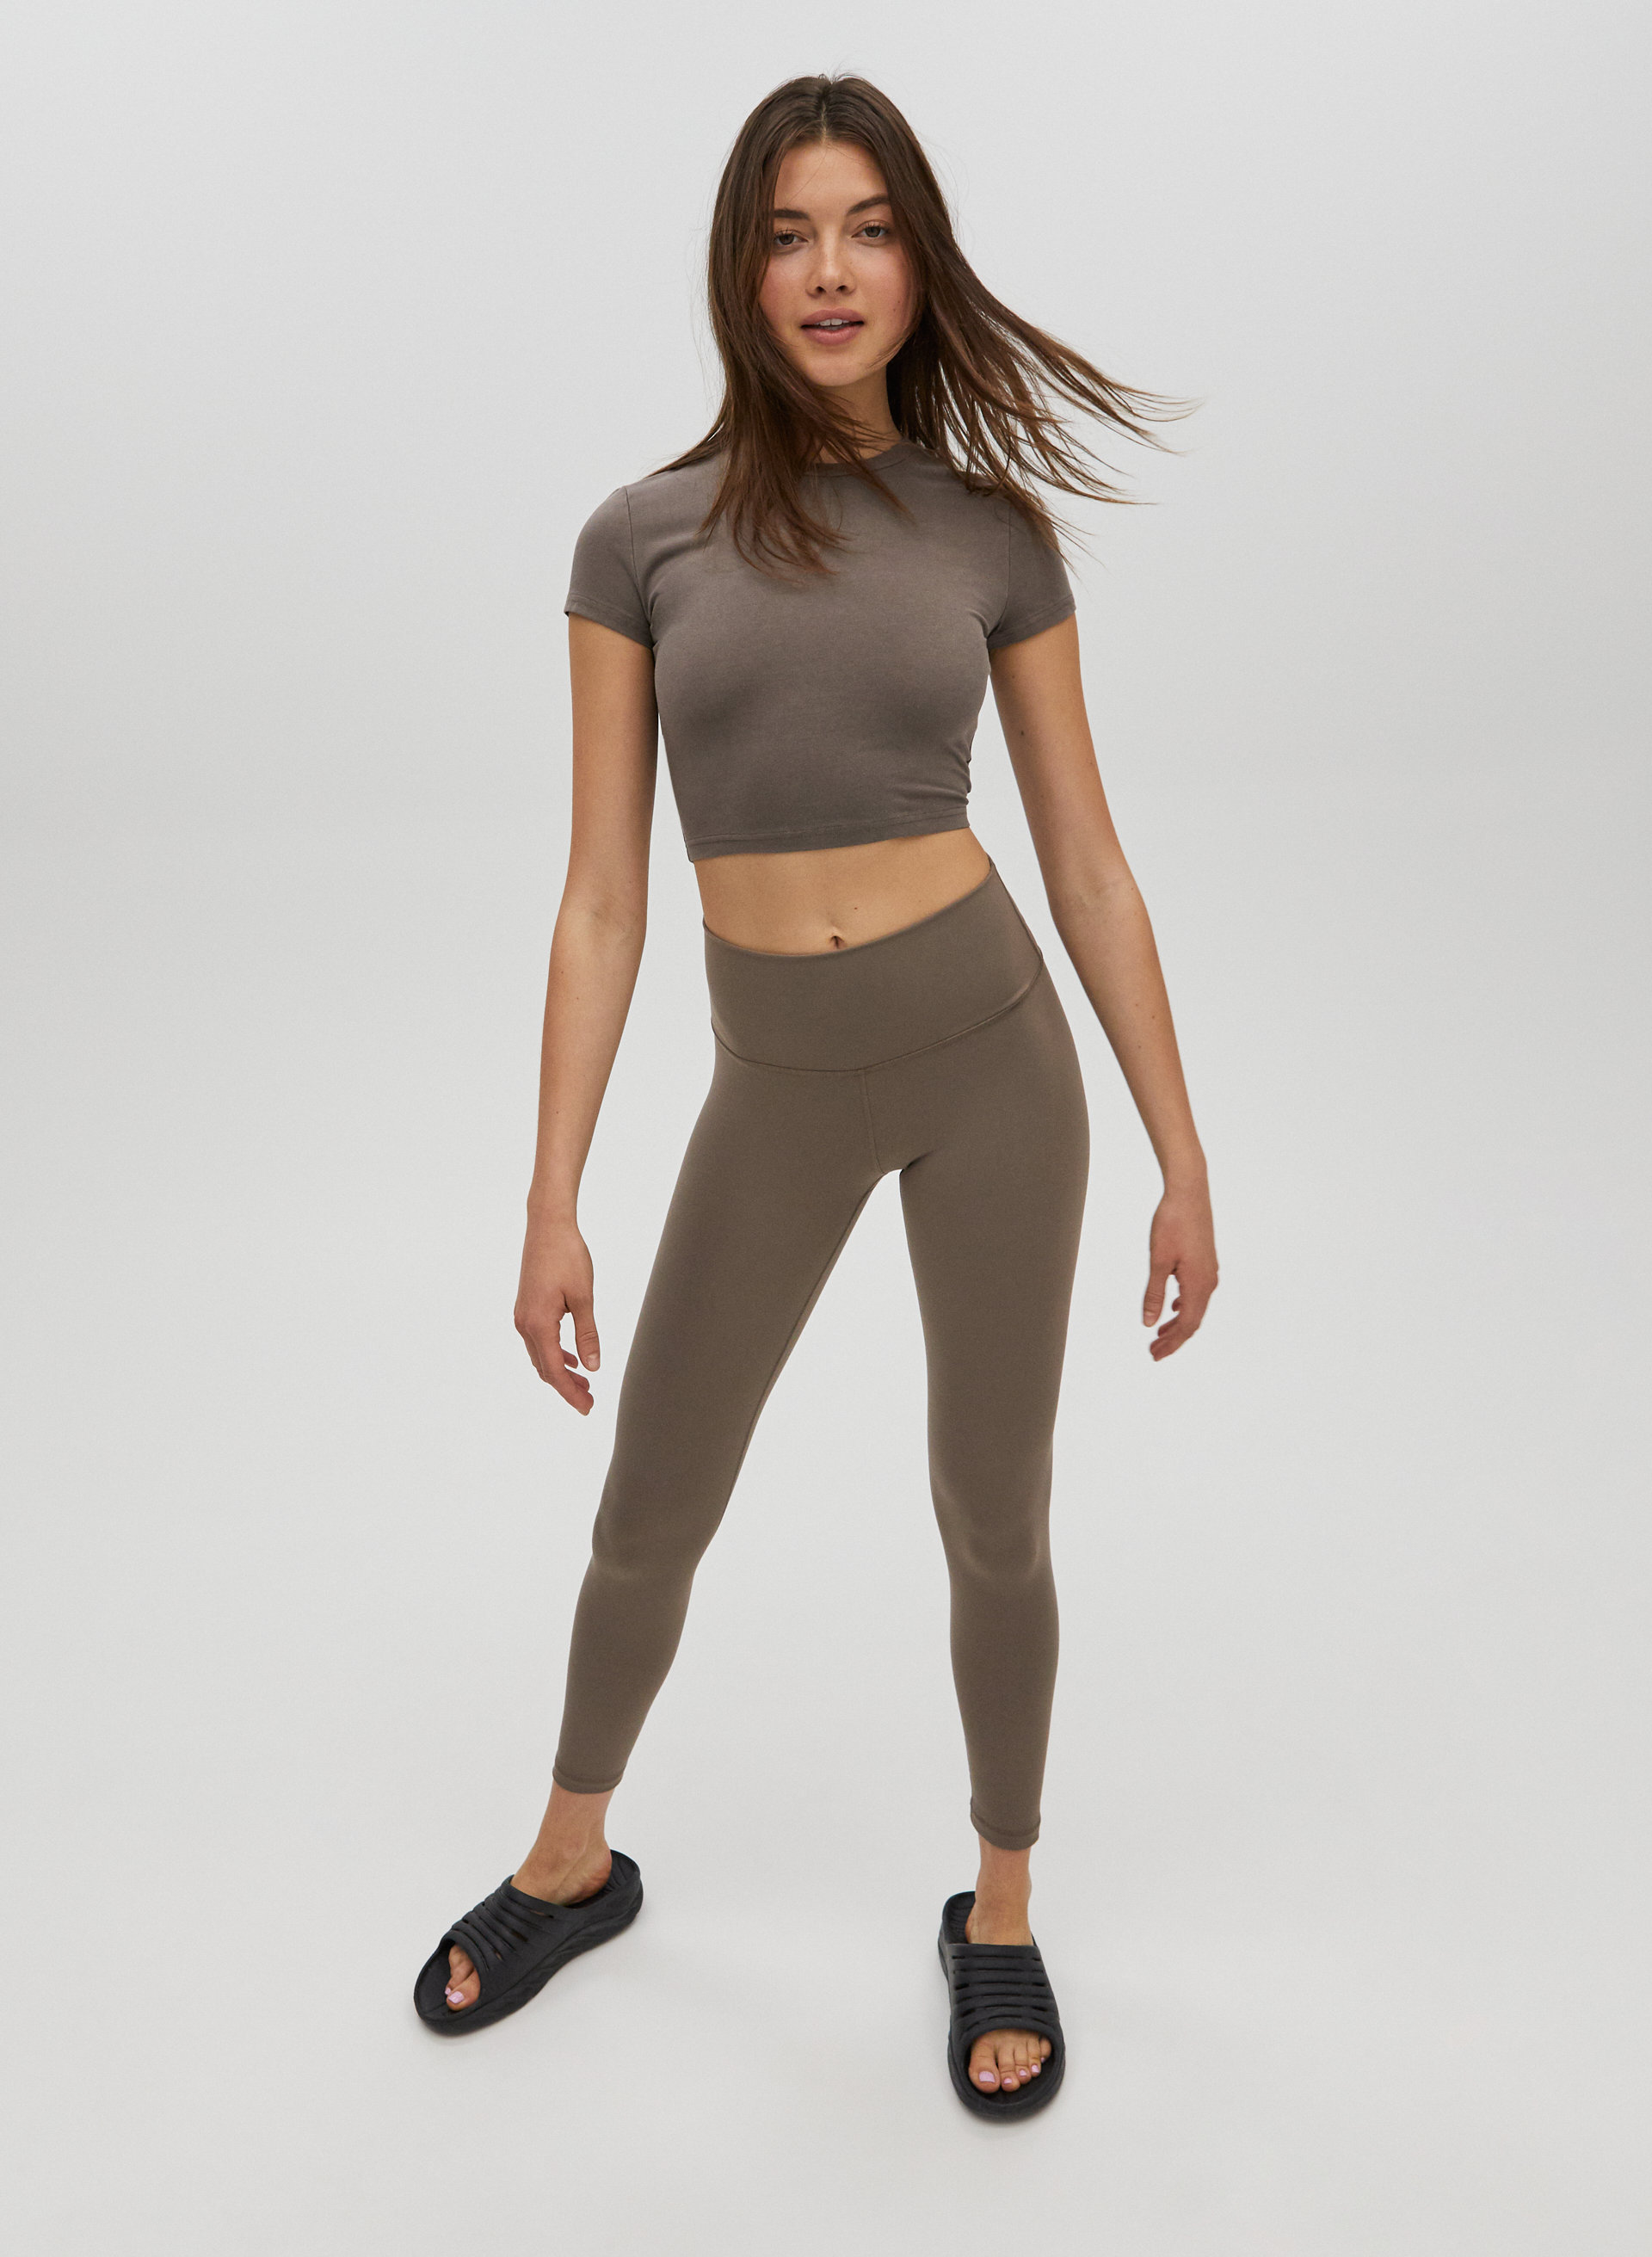 Composed of Stretch Soft Fabric Knee Length Leggings Sizes XS//S//M//L//XL